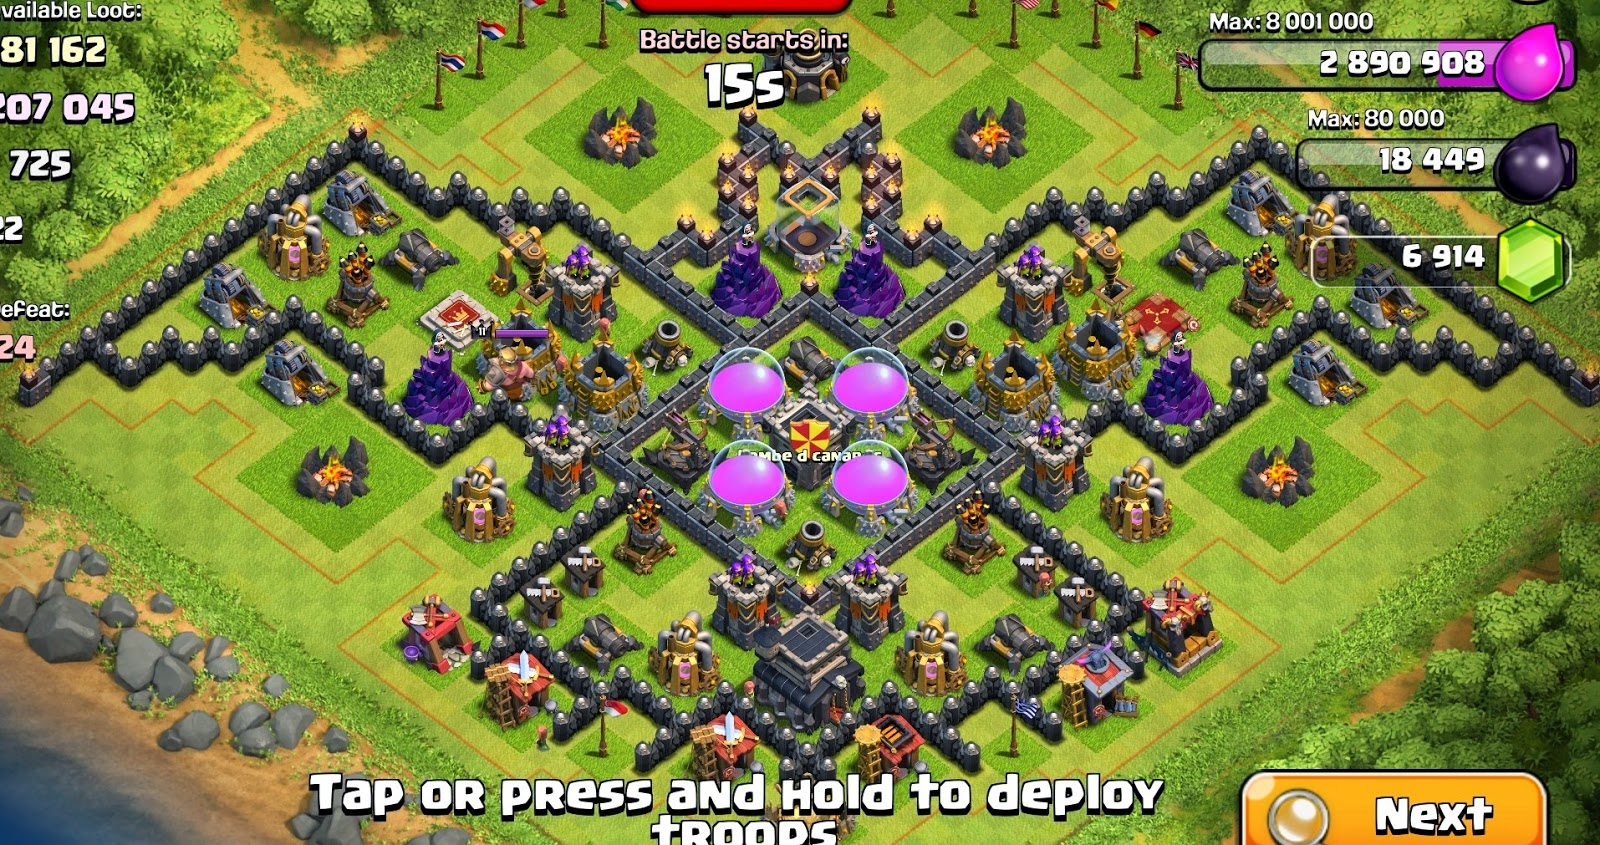 Clash of clans best town hall 8 southern teaser trophy base hestia